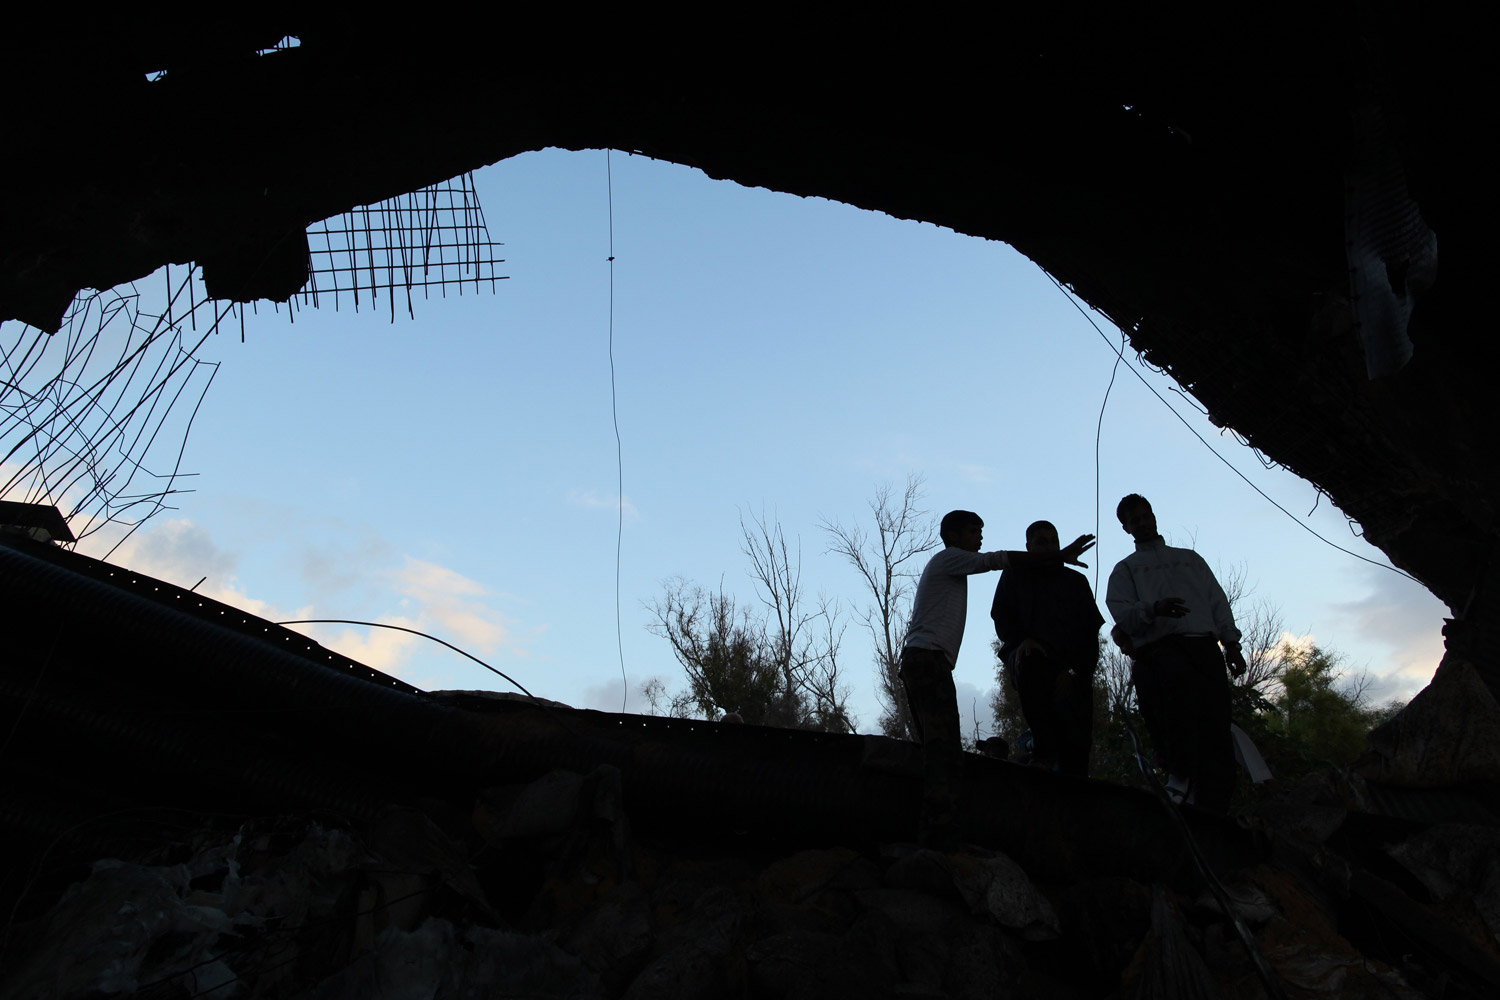 November 18, 2011. A Libyan mine-disposal team inspects damage after the controlled detonation of an unexploded NATO bomb at a military compound in Tripoli. Many Libyans hope the recent capture of Muammar Gaddafi's son Saif al-Islam Gaddafi may at last herald an end to hostilities.